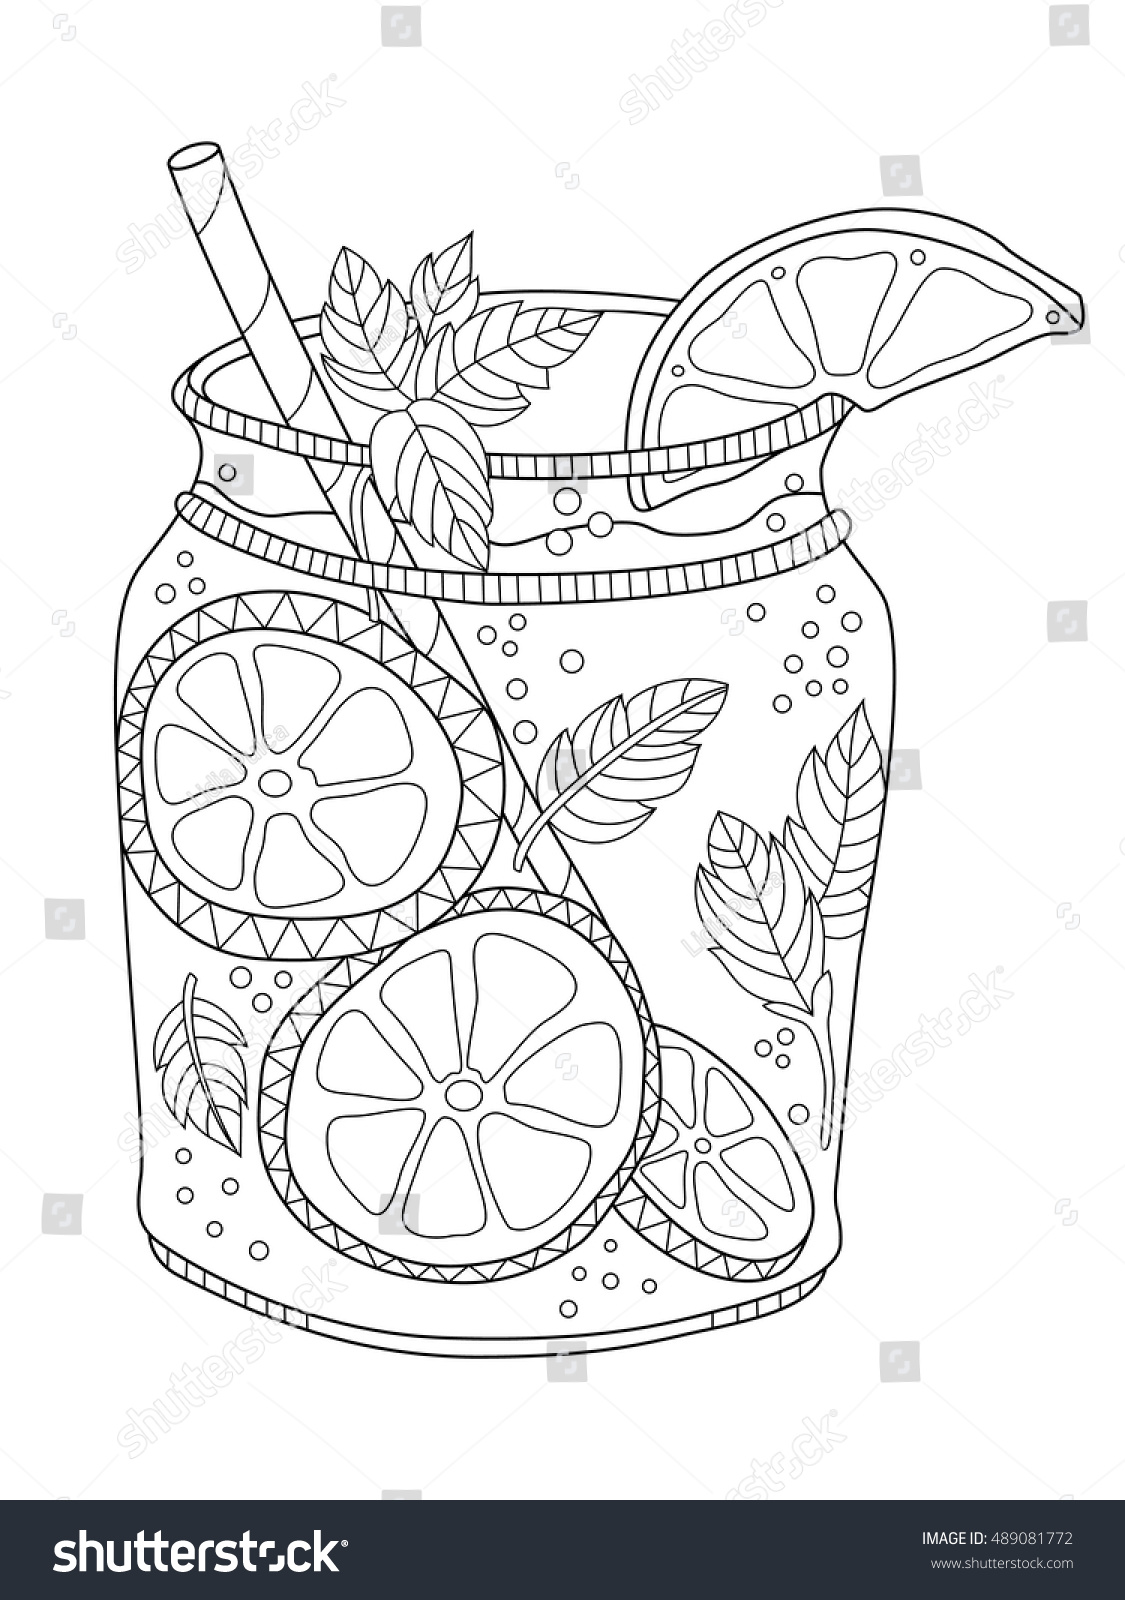 Lemonade Jar Coloring Page Adults Zentangle Stock Vector 489081772 ...